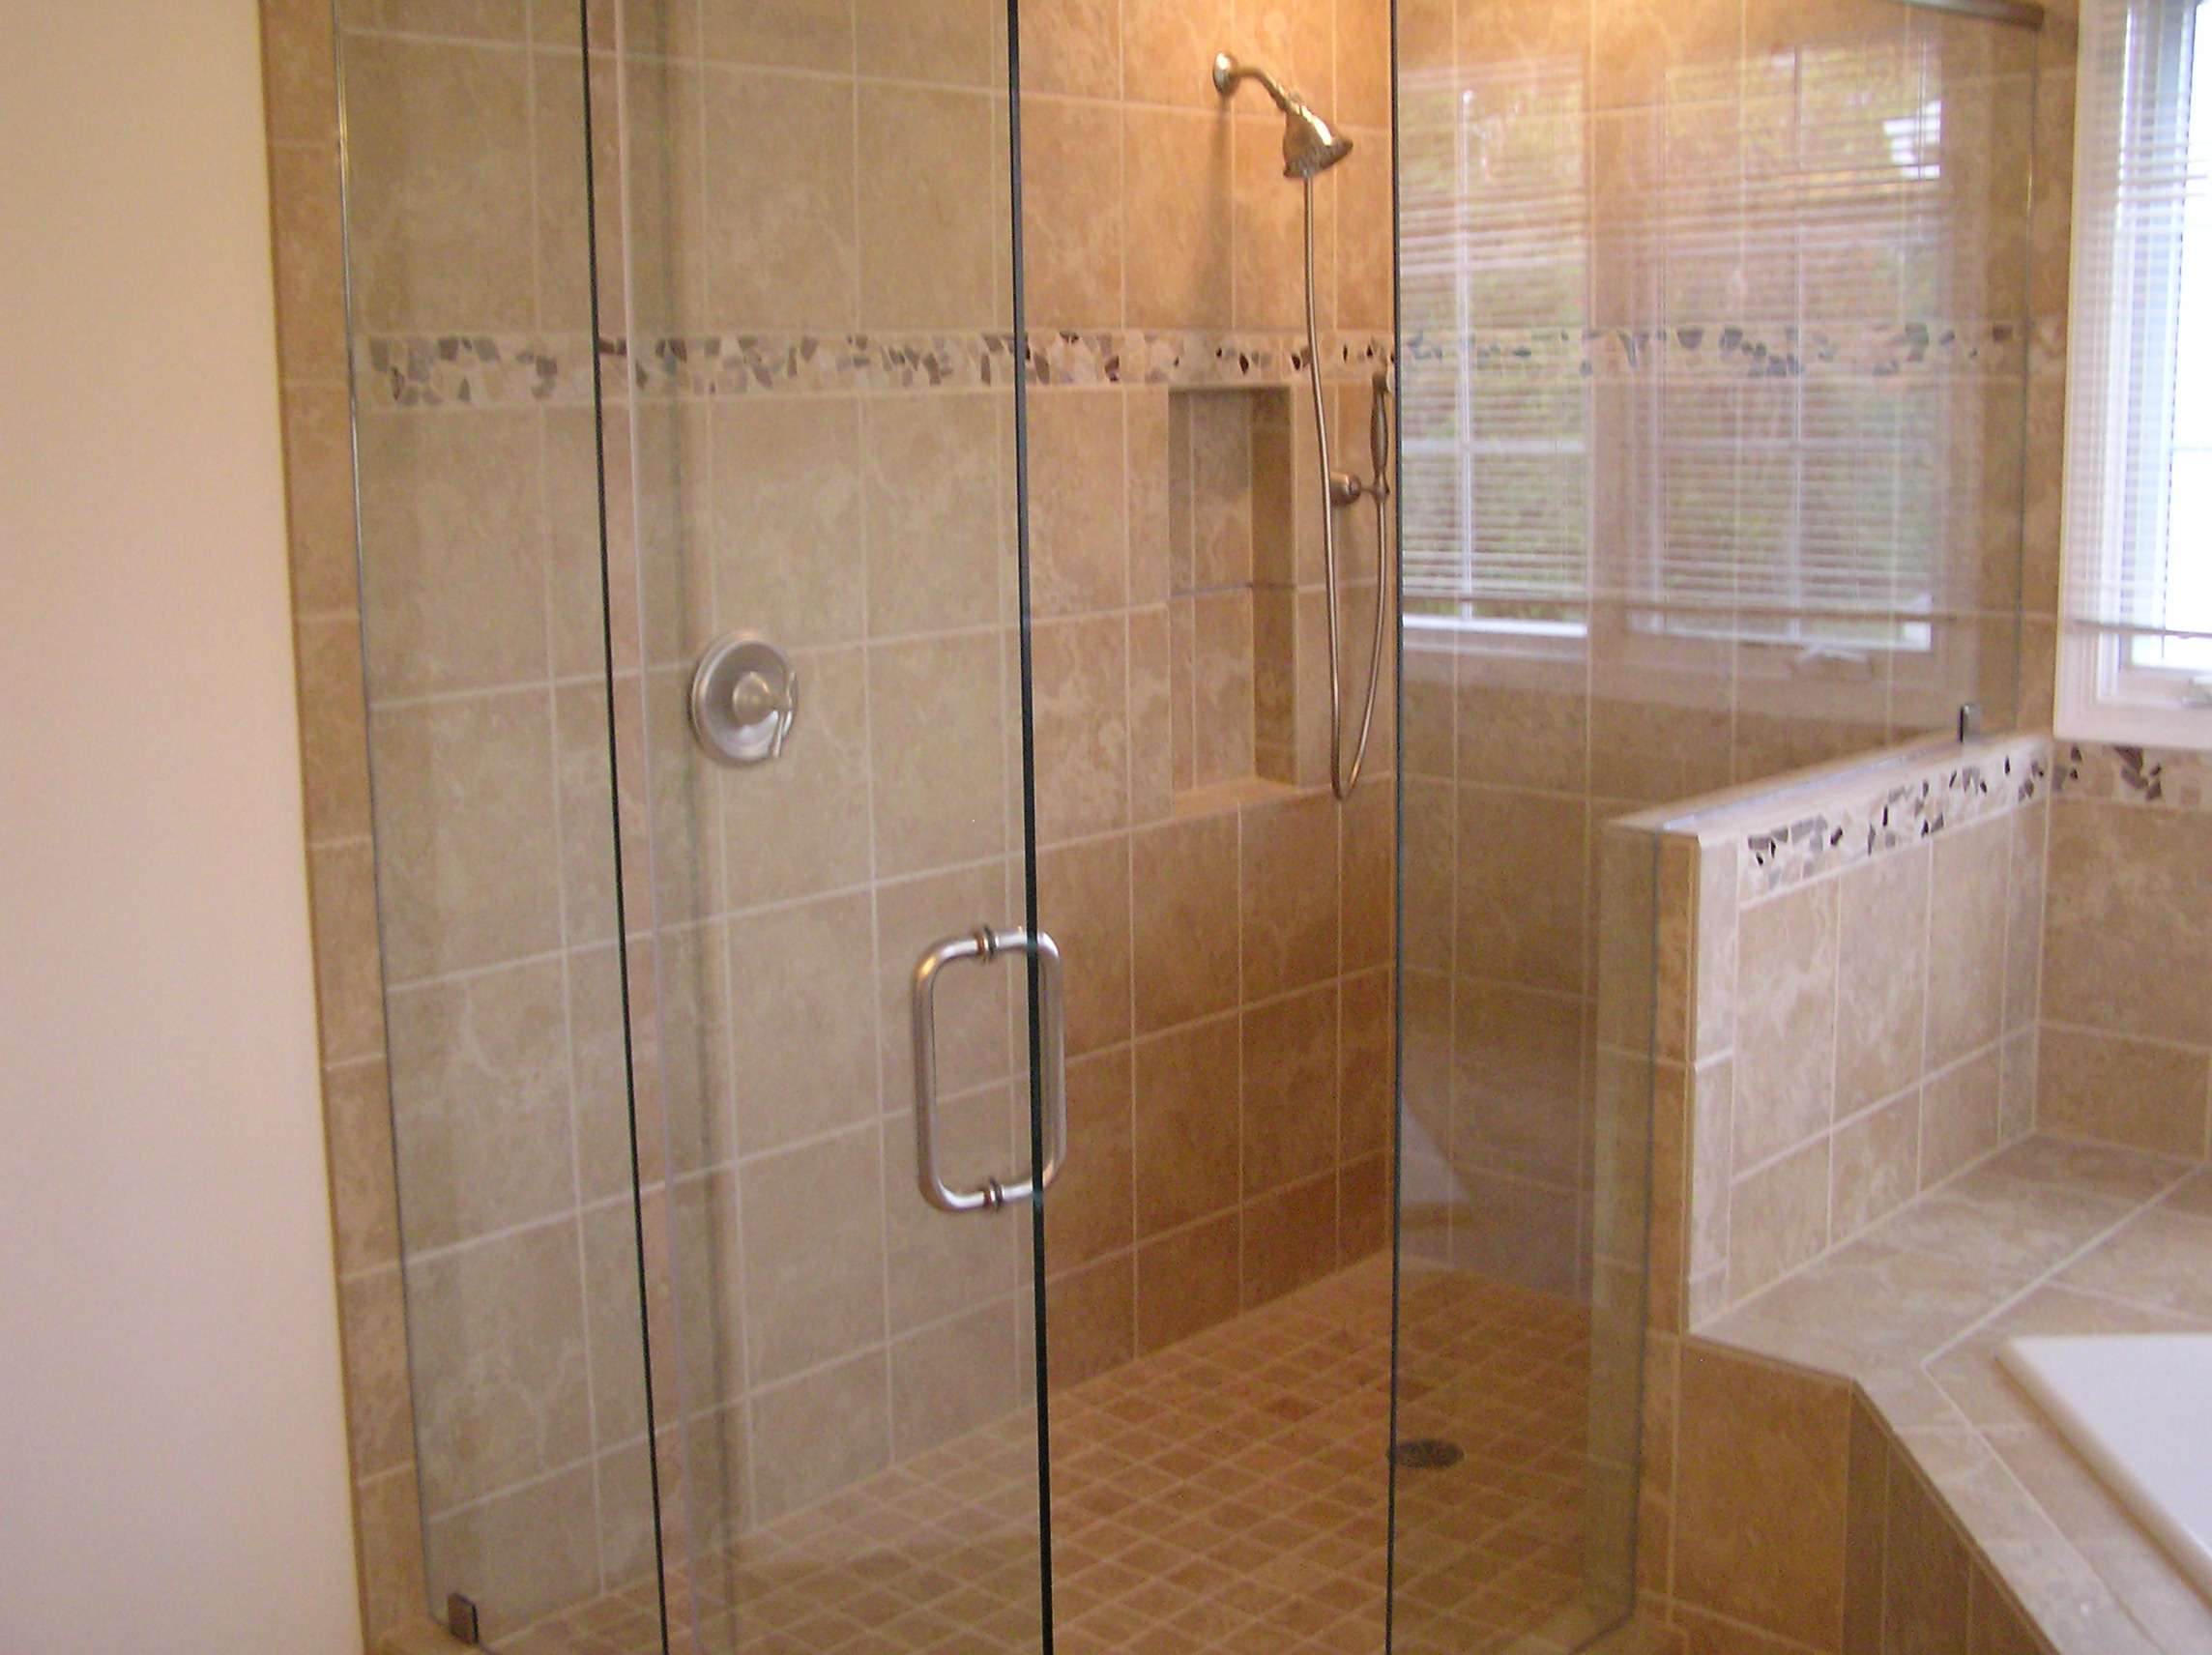 Larger Shower Built Niche